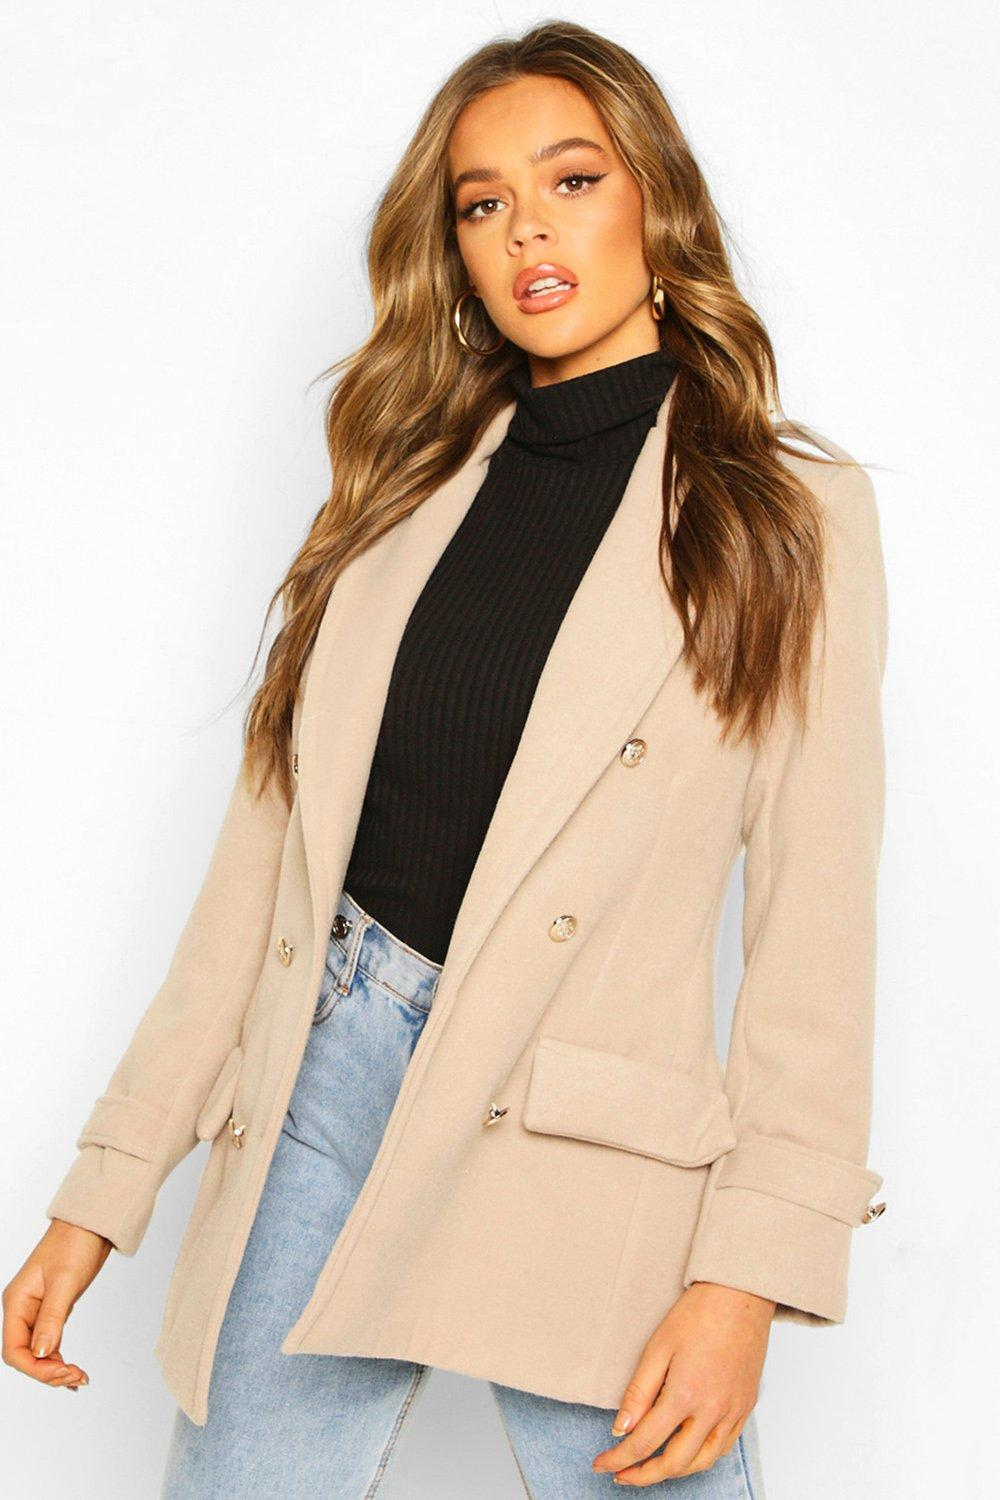 boohoo Womens Double Breasted Military Wool Look Coat - Beige - 12, Beige